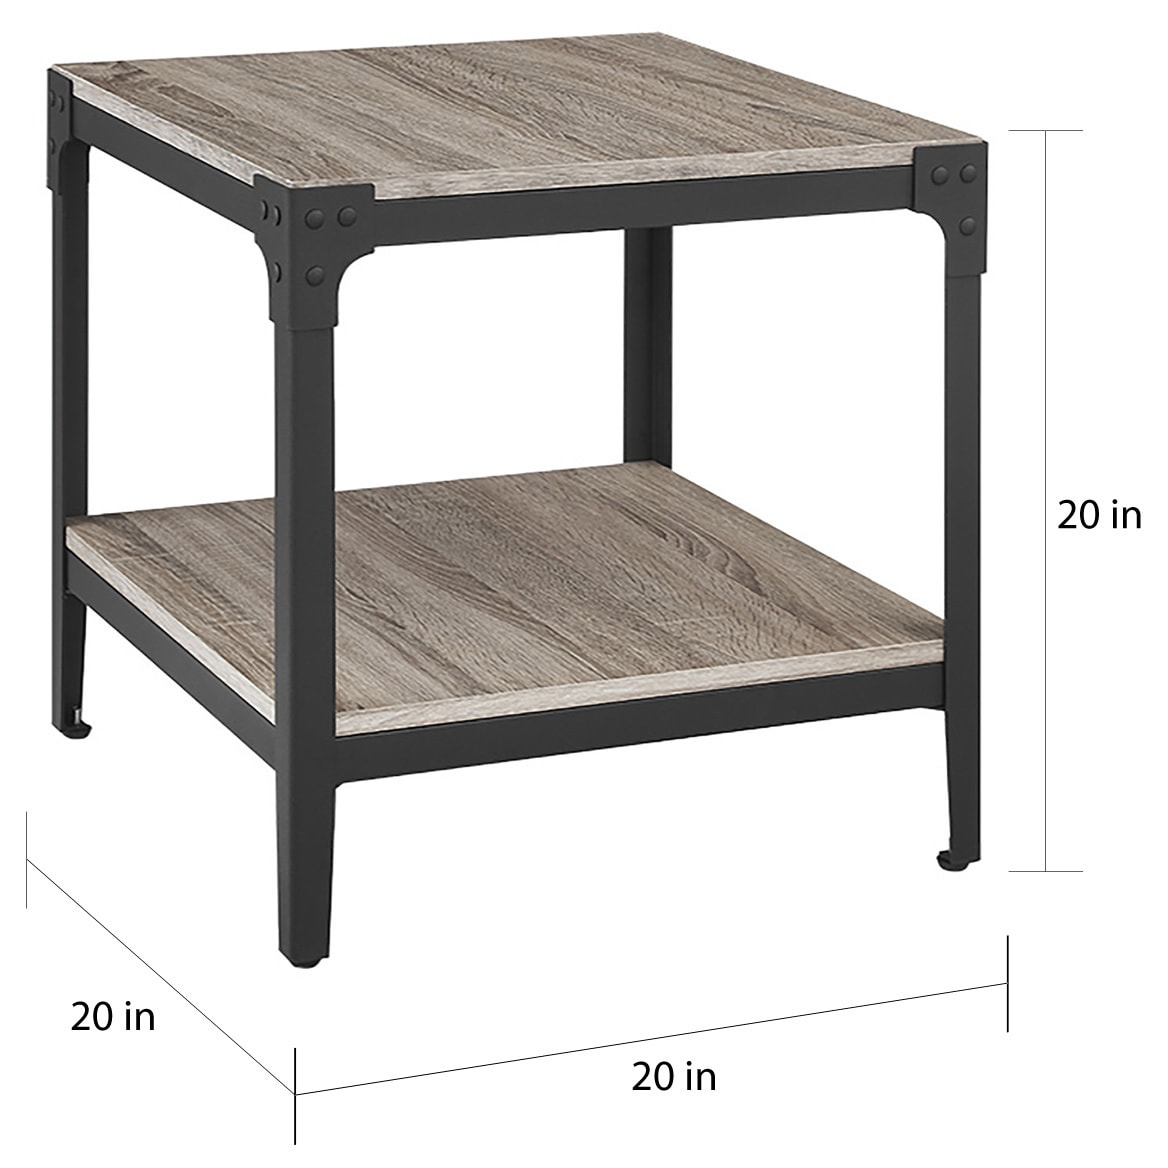 Rustic Angle Iron Driftwood End Tables (Set of 2) - Free Shipping ... for Driftwood Outdoor Furniture  284dqh